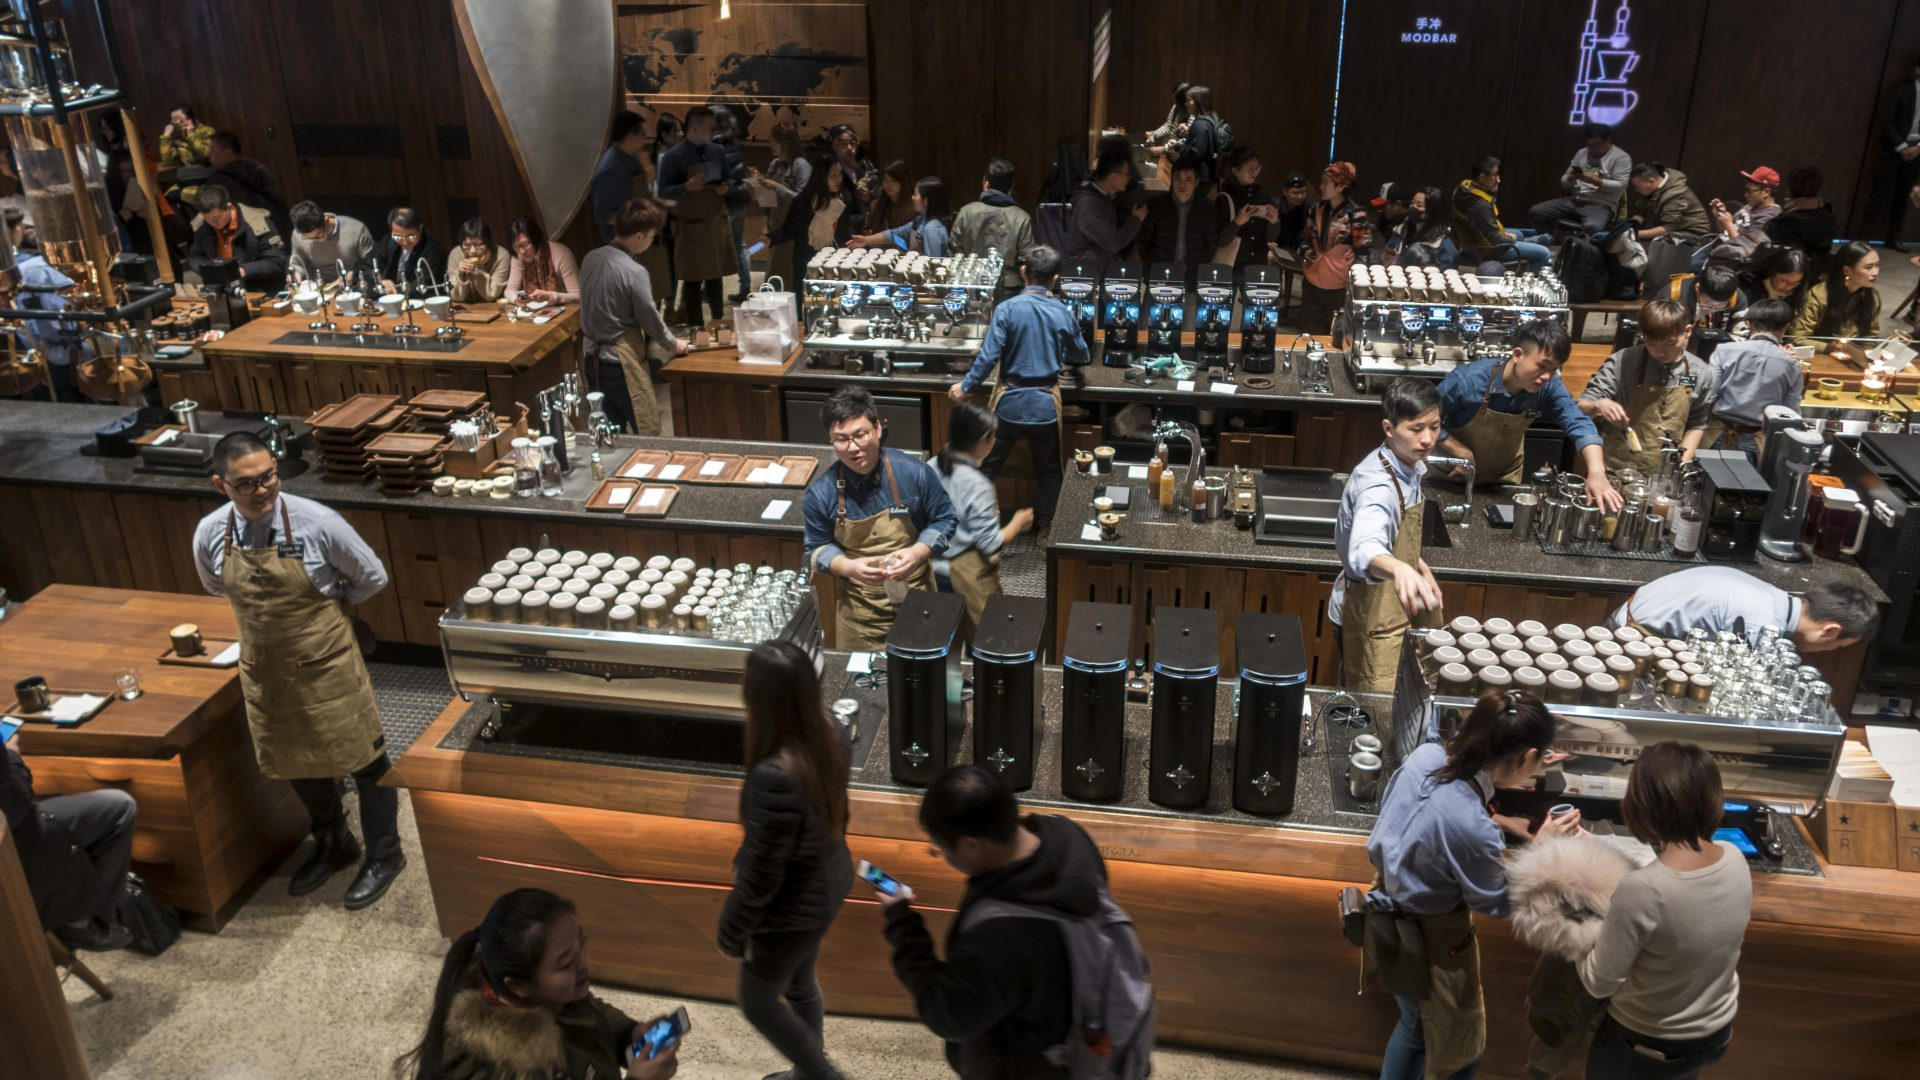 Staff work at the Starbucks Reserve Roastery in Shanghai, China (Chinatopix via AP)